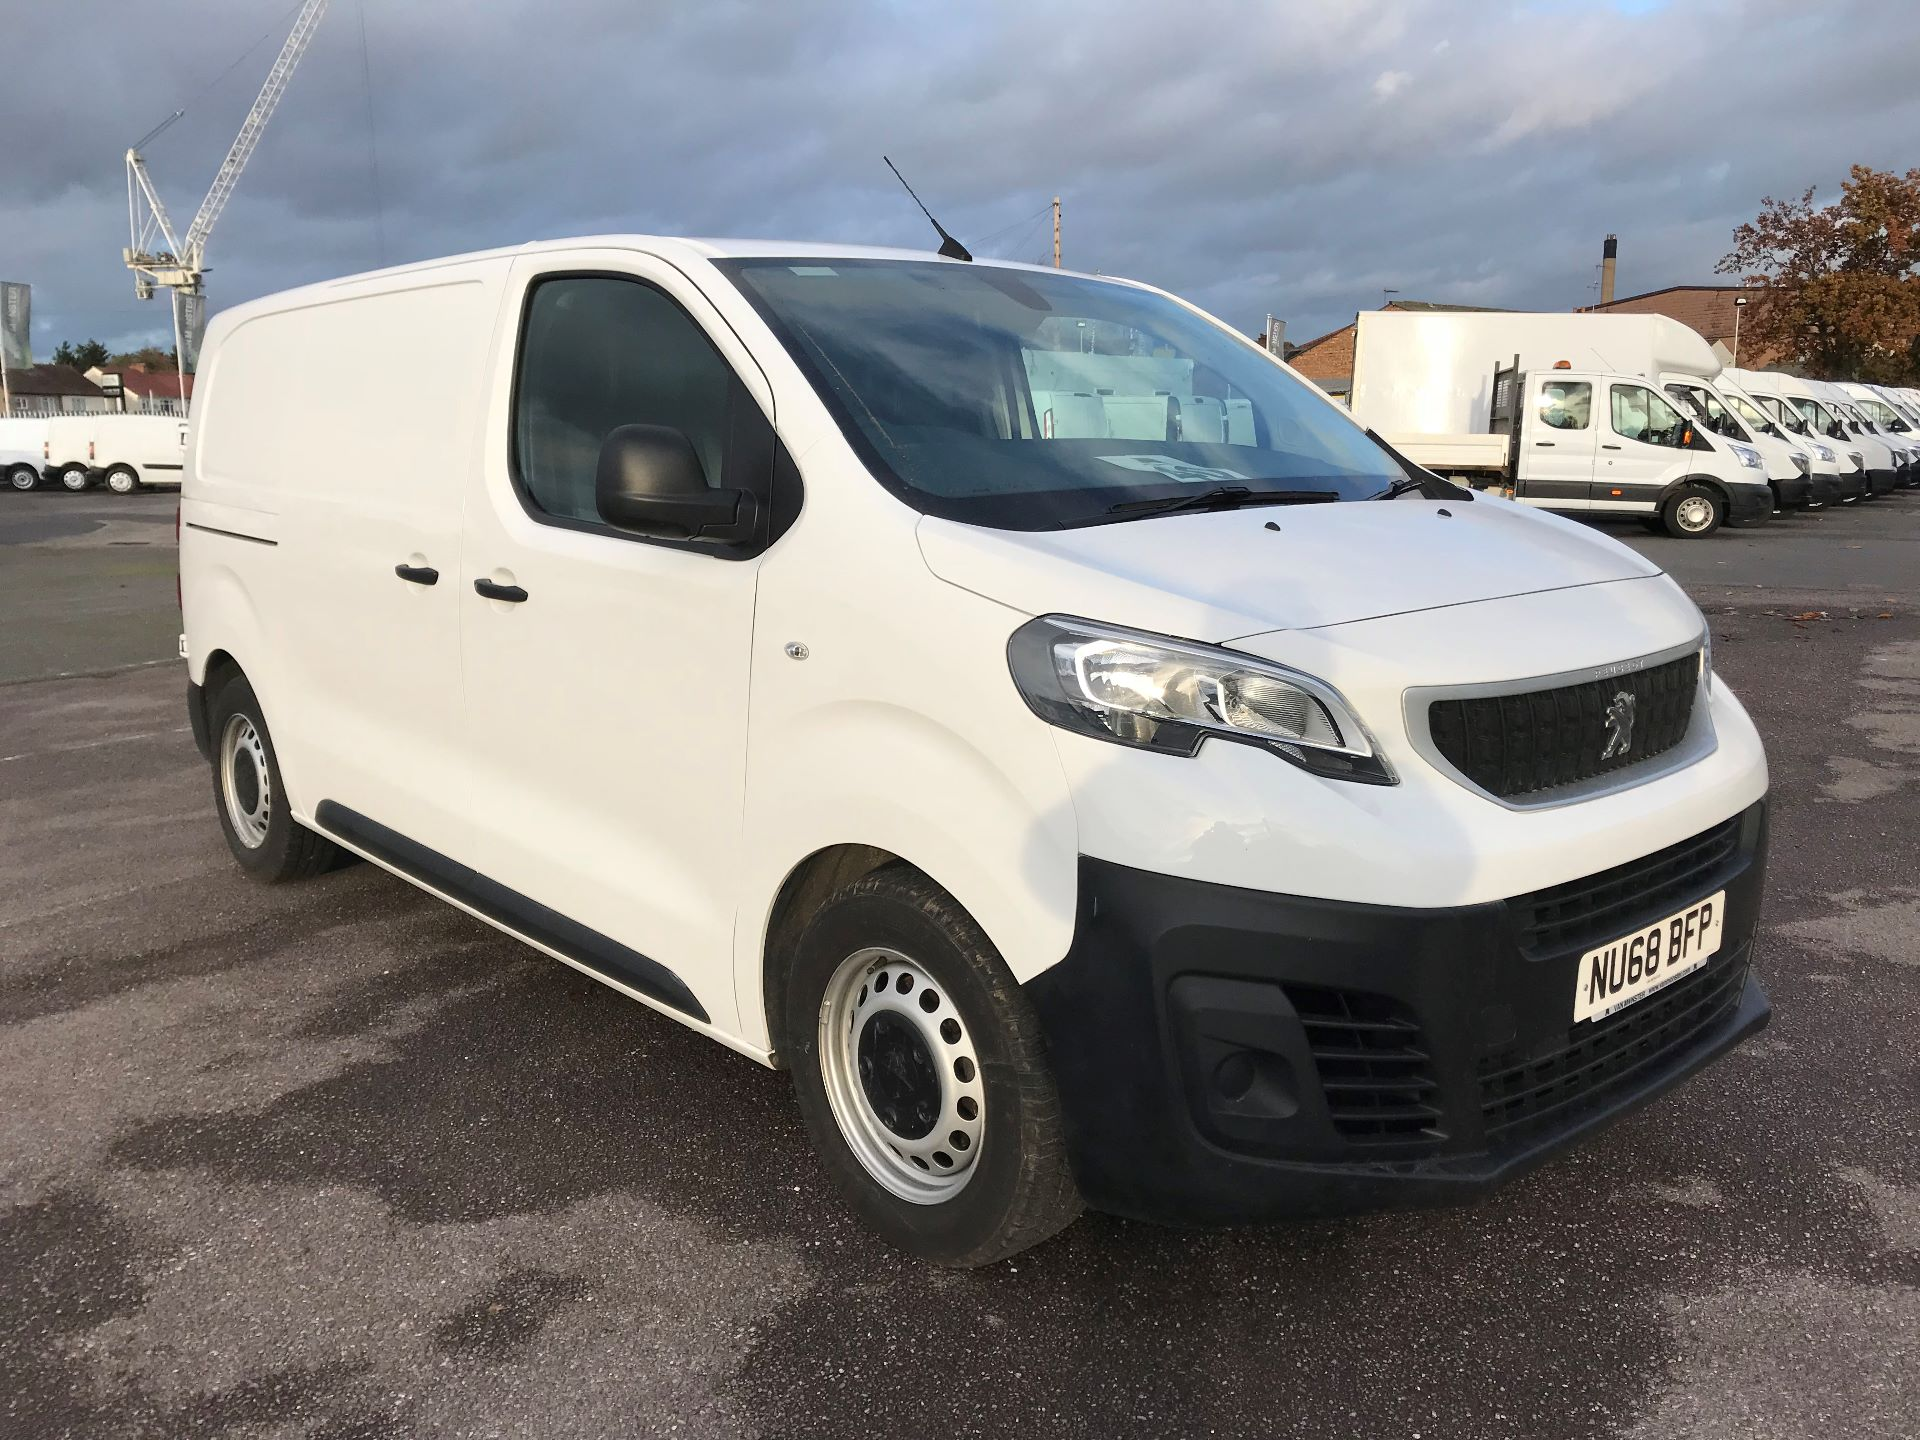 2018 Peugeot Expert   STANDARD 1000 1.6 BLUEHDI 95 PROFFESSIONAL EURO 6 (NU68BFP)